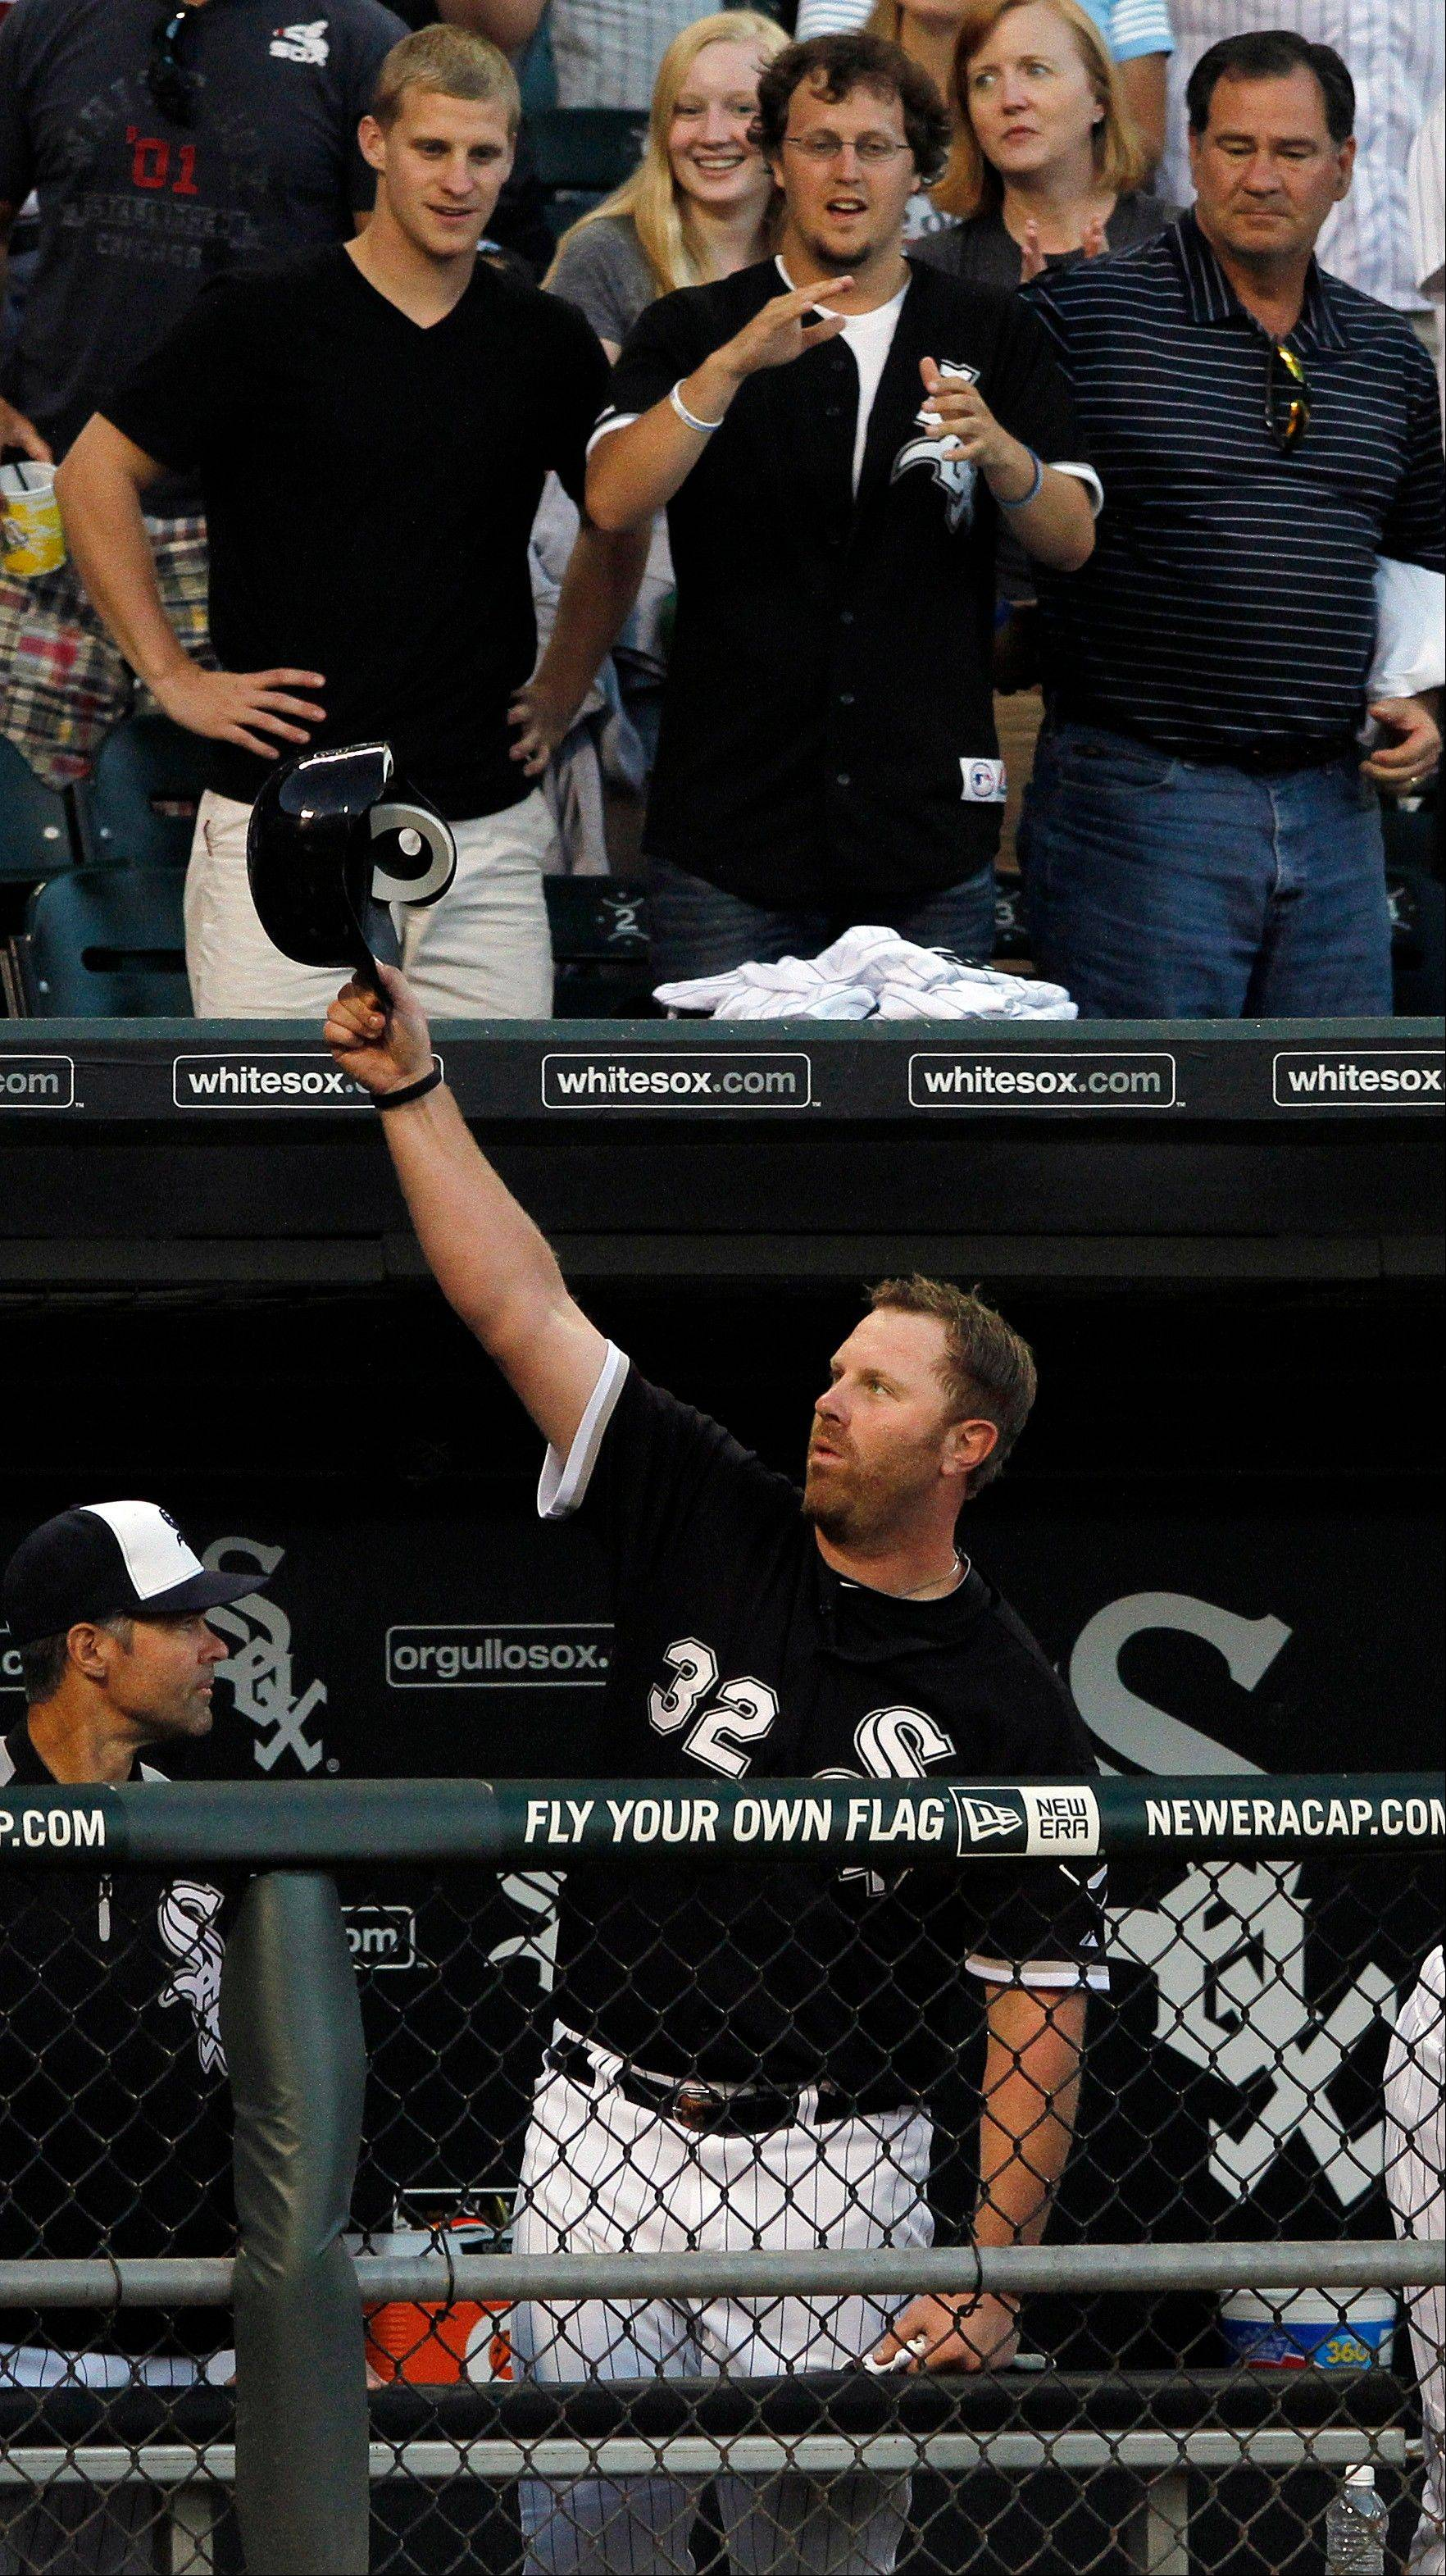 Chicago White Sox's Adam Dunn lifts his batting helmet to the crowd after hitting a two-run home run against the Kansas City Royals.